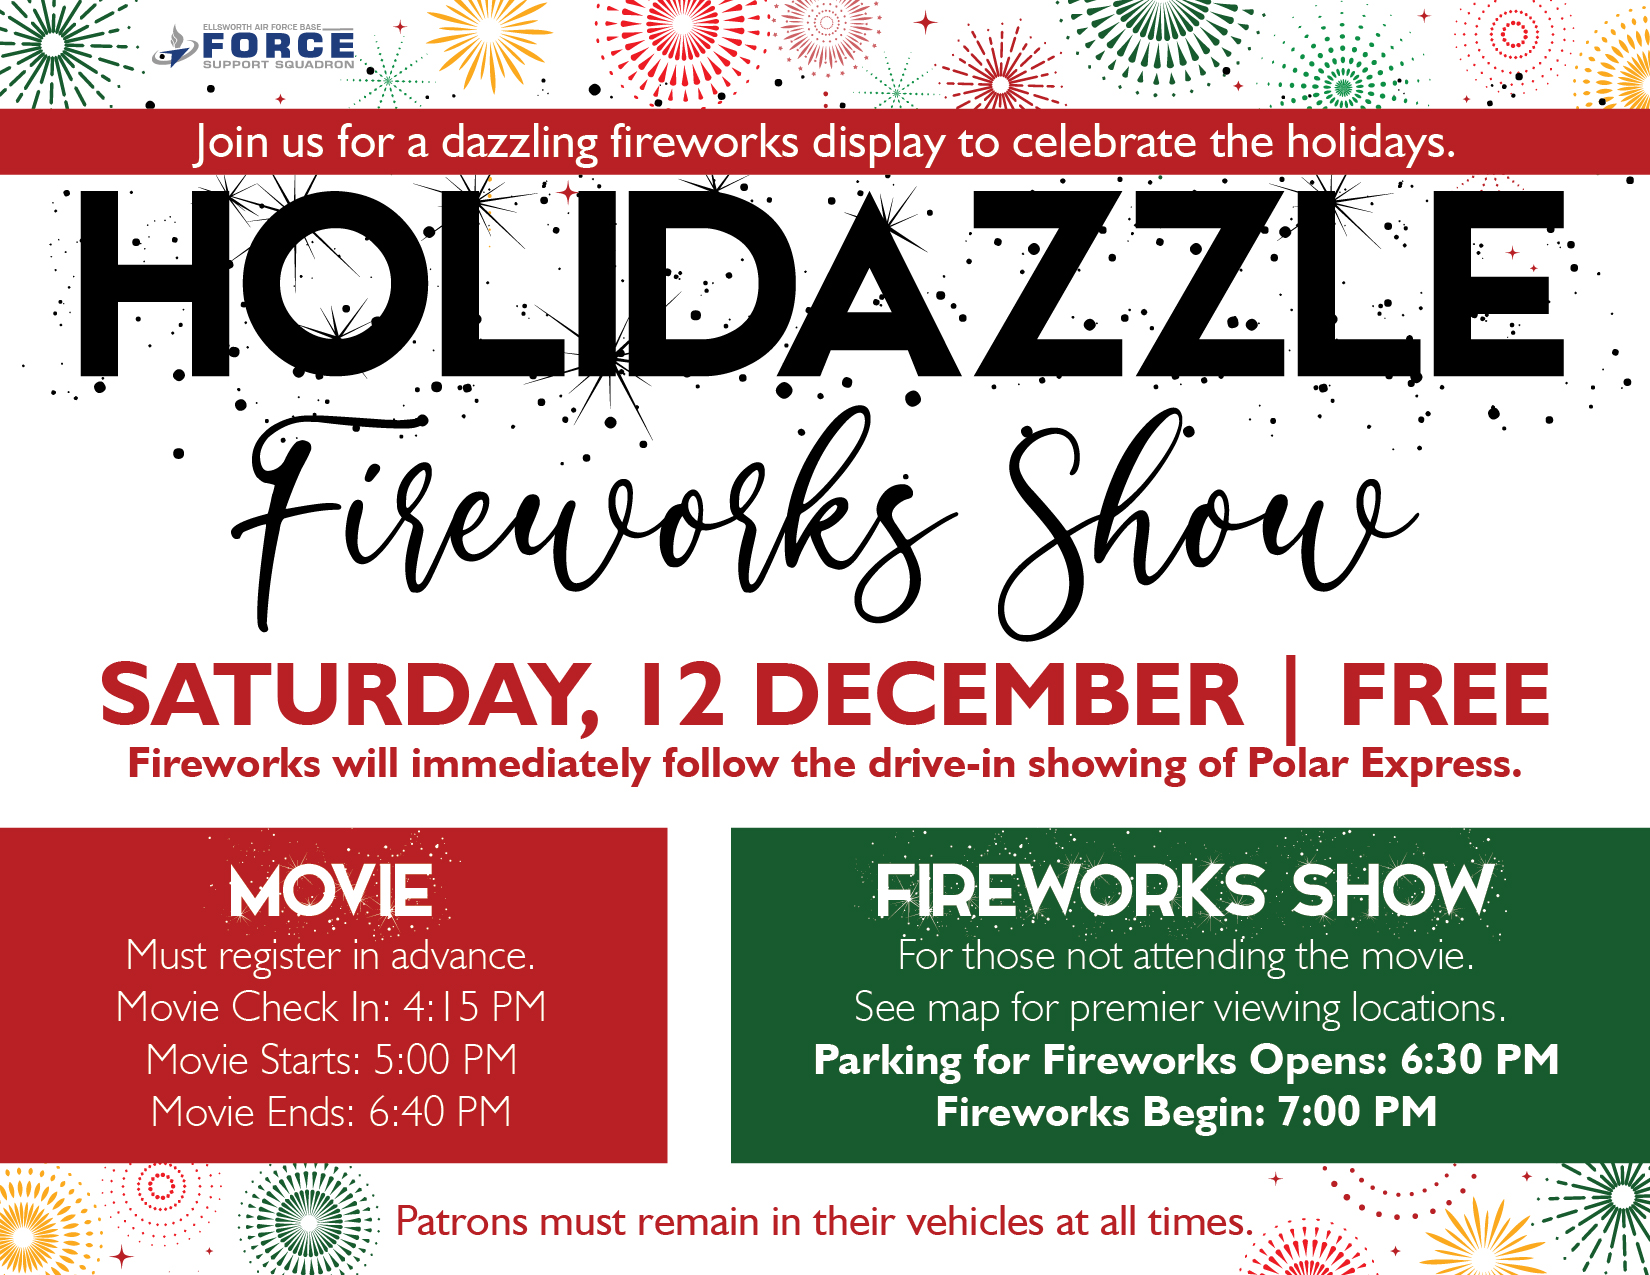 Holidazzle Fireworks Show 01